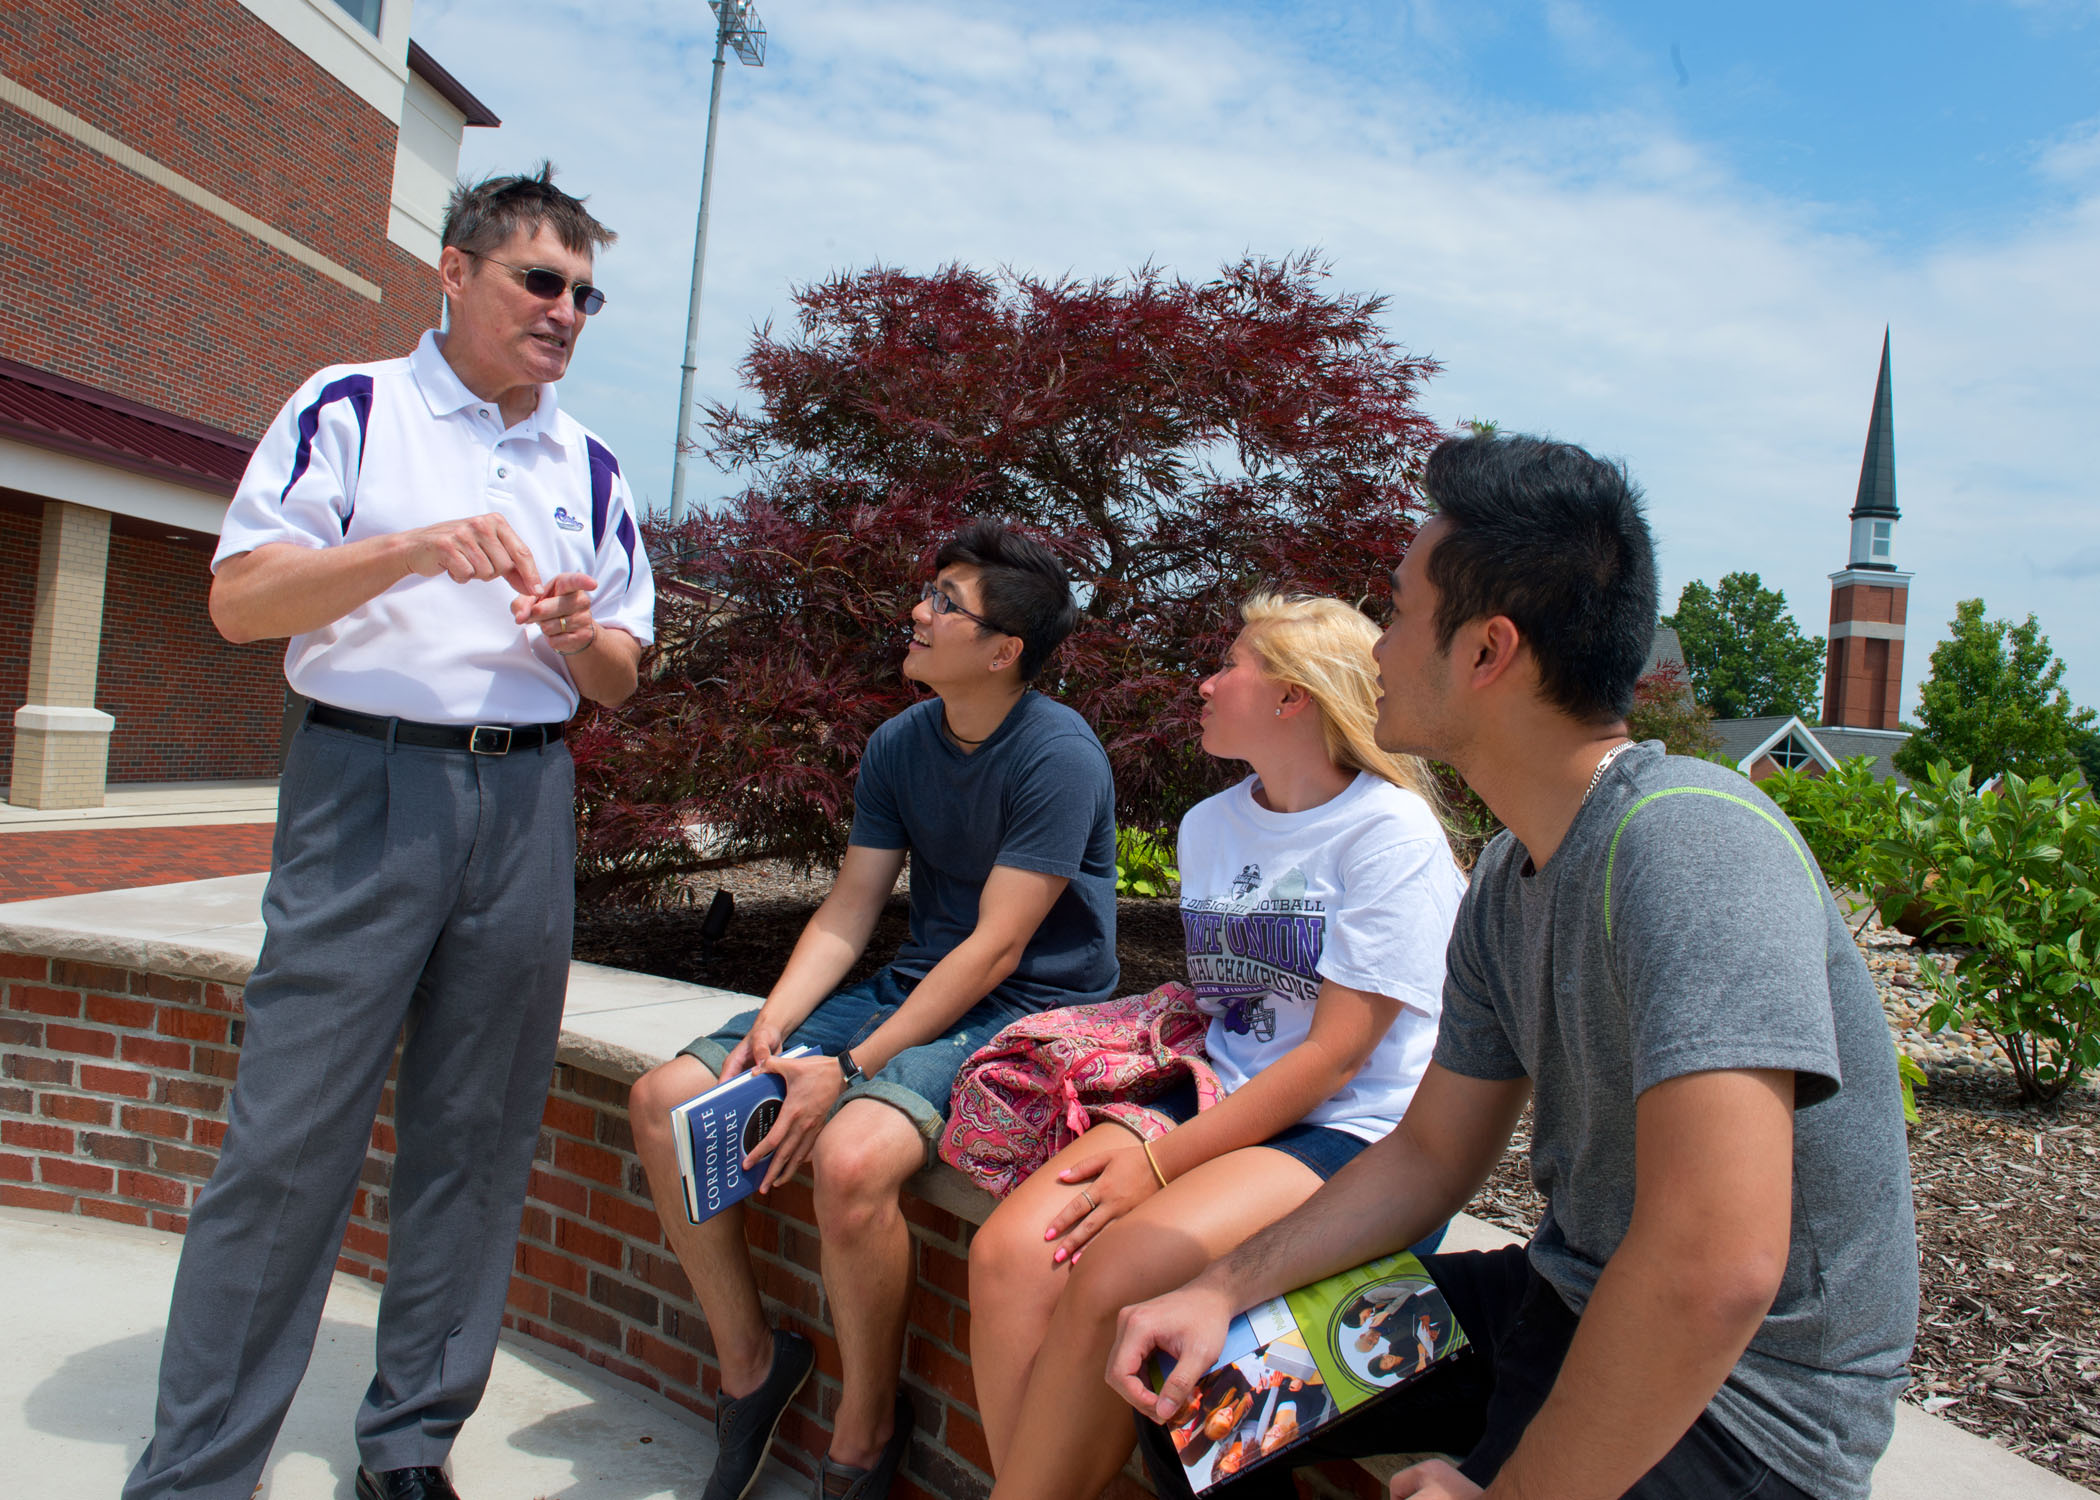 University of Mount Union students and professor outside